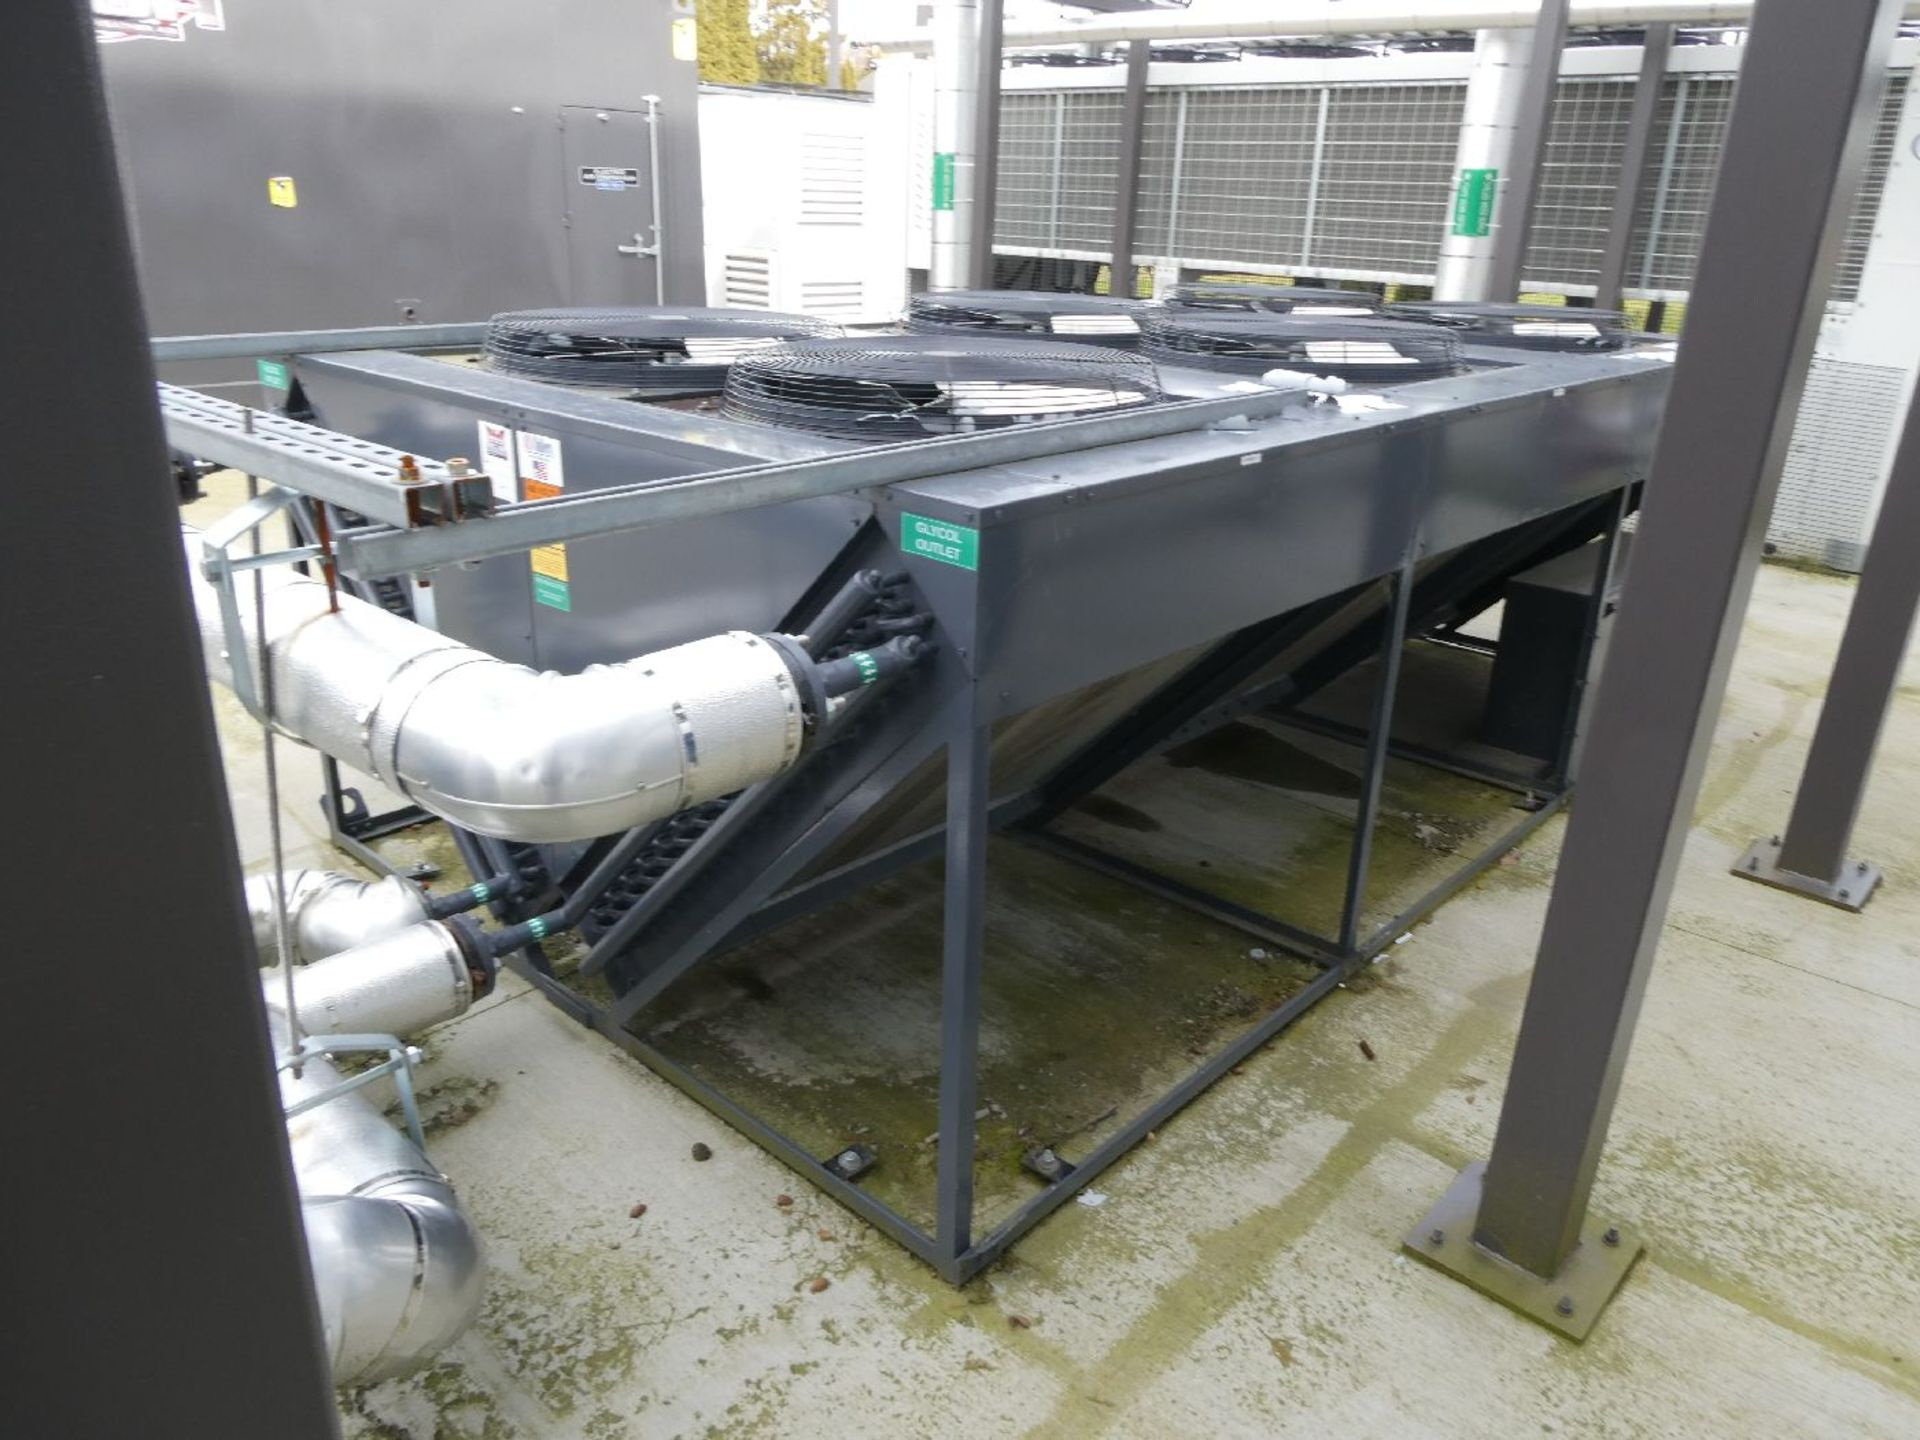 ROTAX Closed Loop Solvent Based Continuous Oil Extraction System - Image 65 of 68